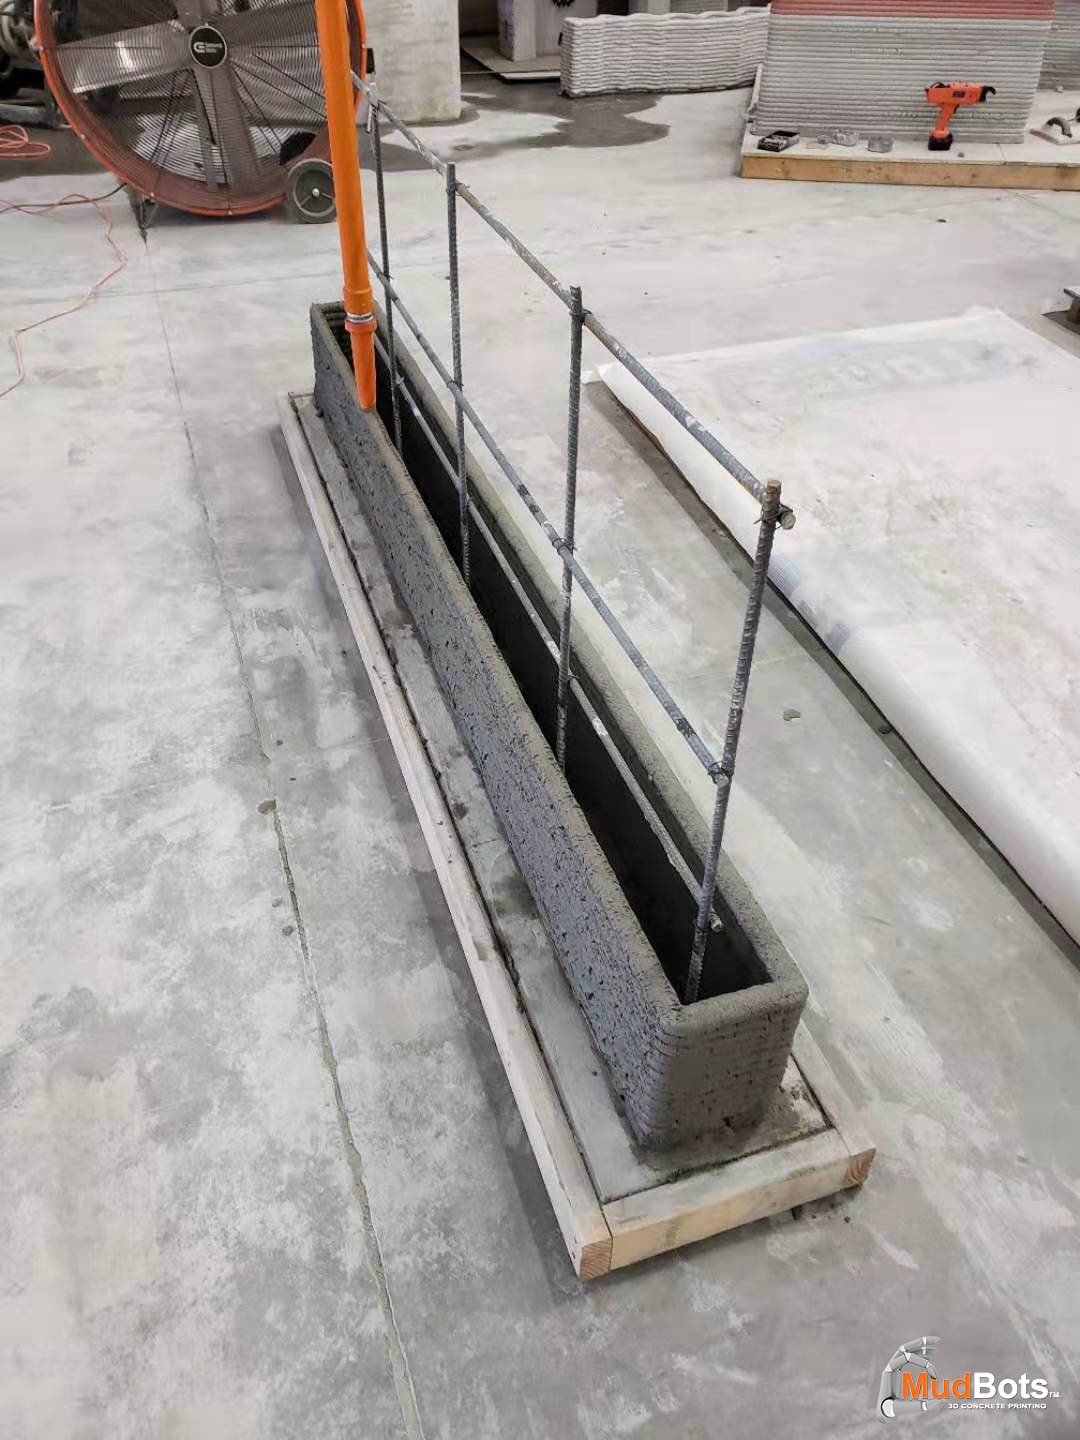 A unique feature with MudBots printers is the ability to print forms for flatwork and footings. Users can print to within an inch of rebar as seen in the image. What most don't realize is that there are mixes that have the structural strength and tensile properties that eliminate the need for rebar all together. Engineers are already adapting to the benefits of concrete printing by specking wall systems that are rebar free which lowers the cost of the wall as well as the electrical and plumbing.